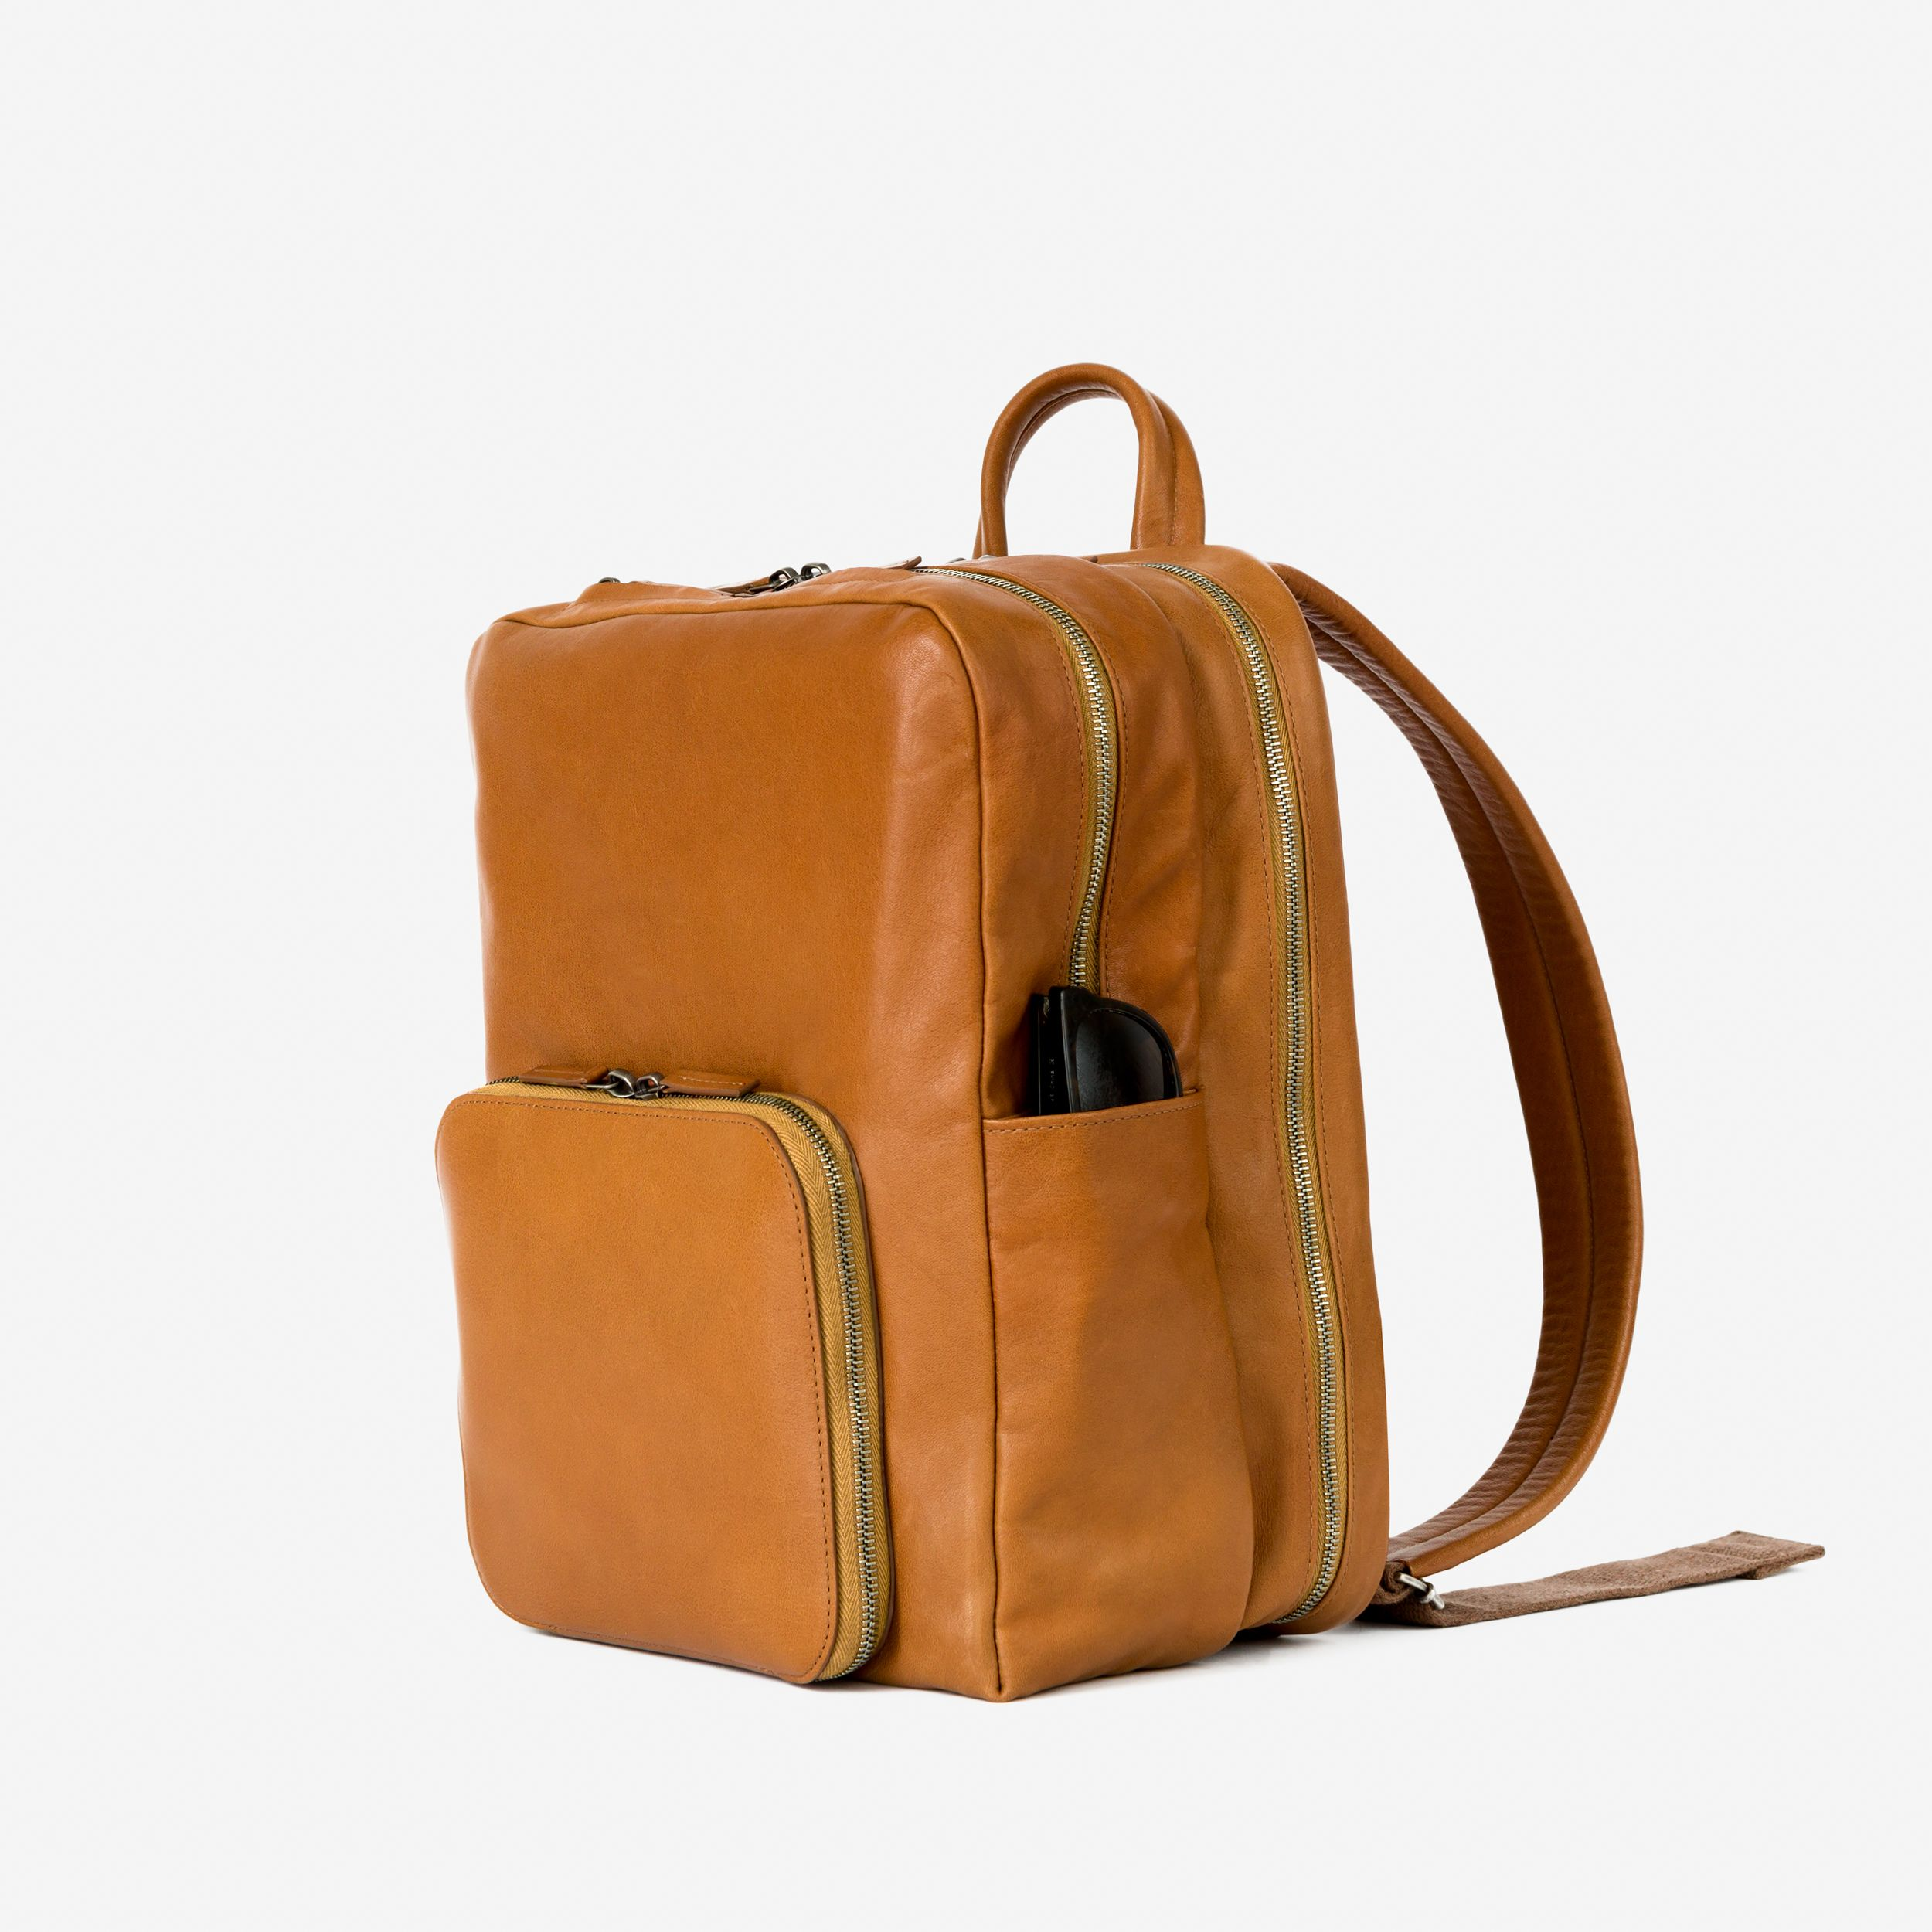 978f3117b59e leather backpack w 3 sections + wifi + location tracking